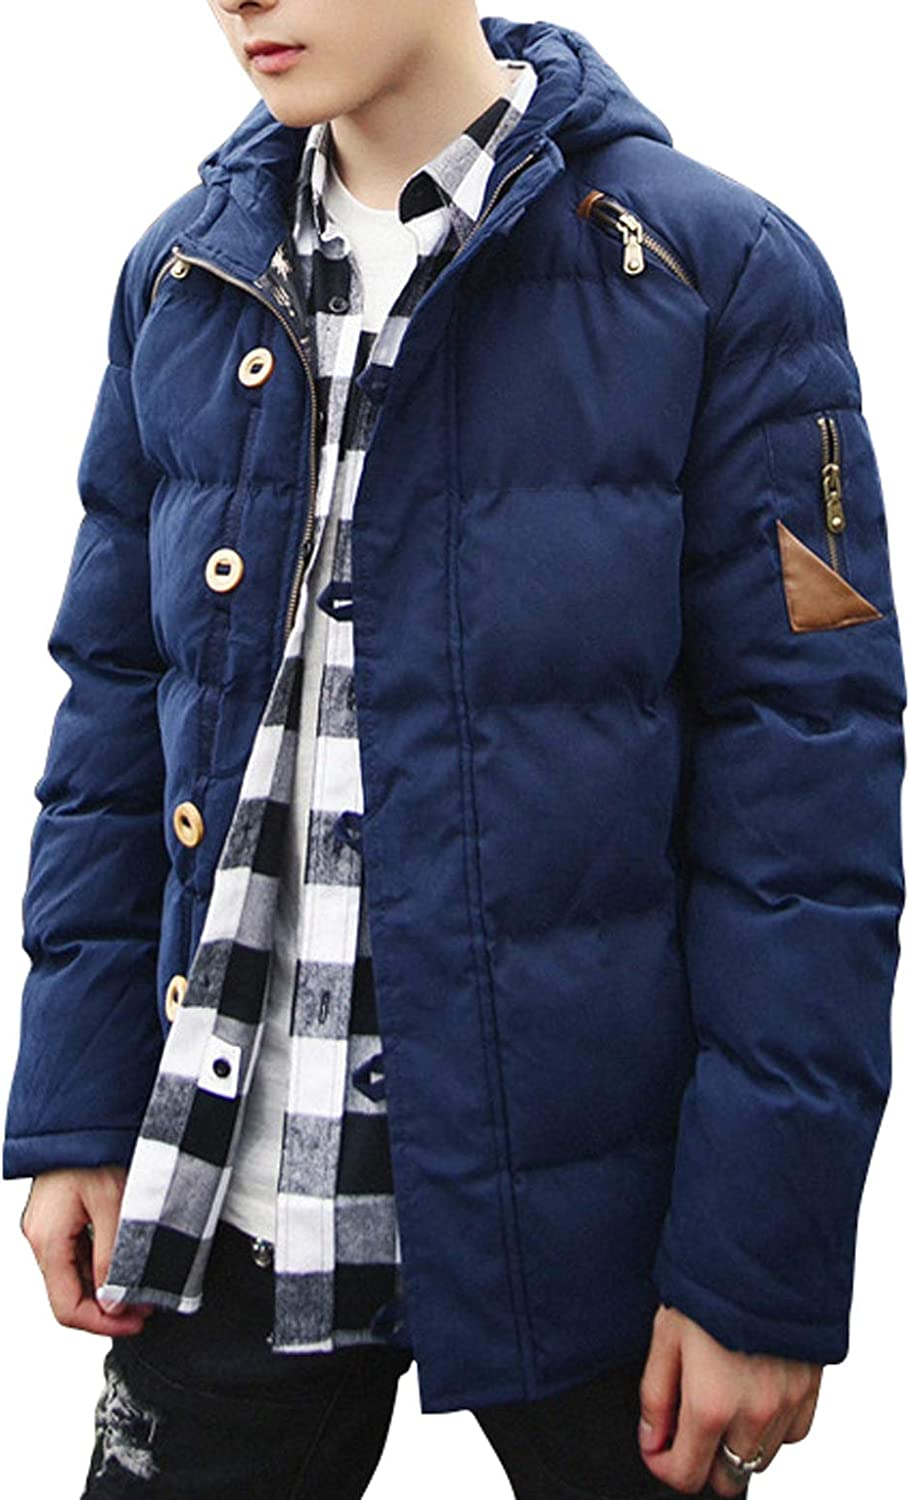 Itemnew Mans Stylish Full-Zip Button-Up Hooded Quilted Puffer Coat Padded Jacket